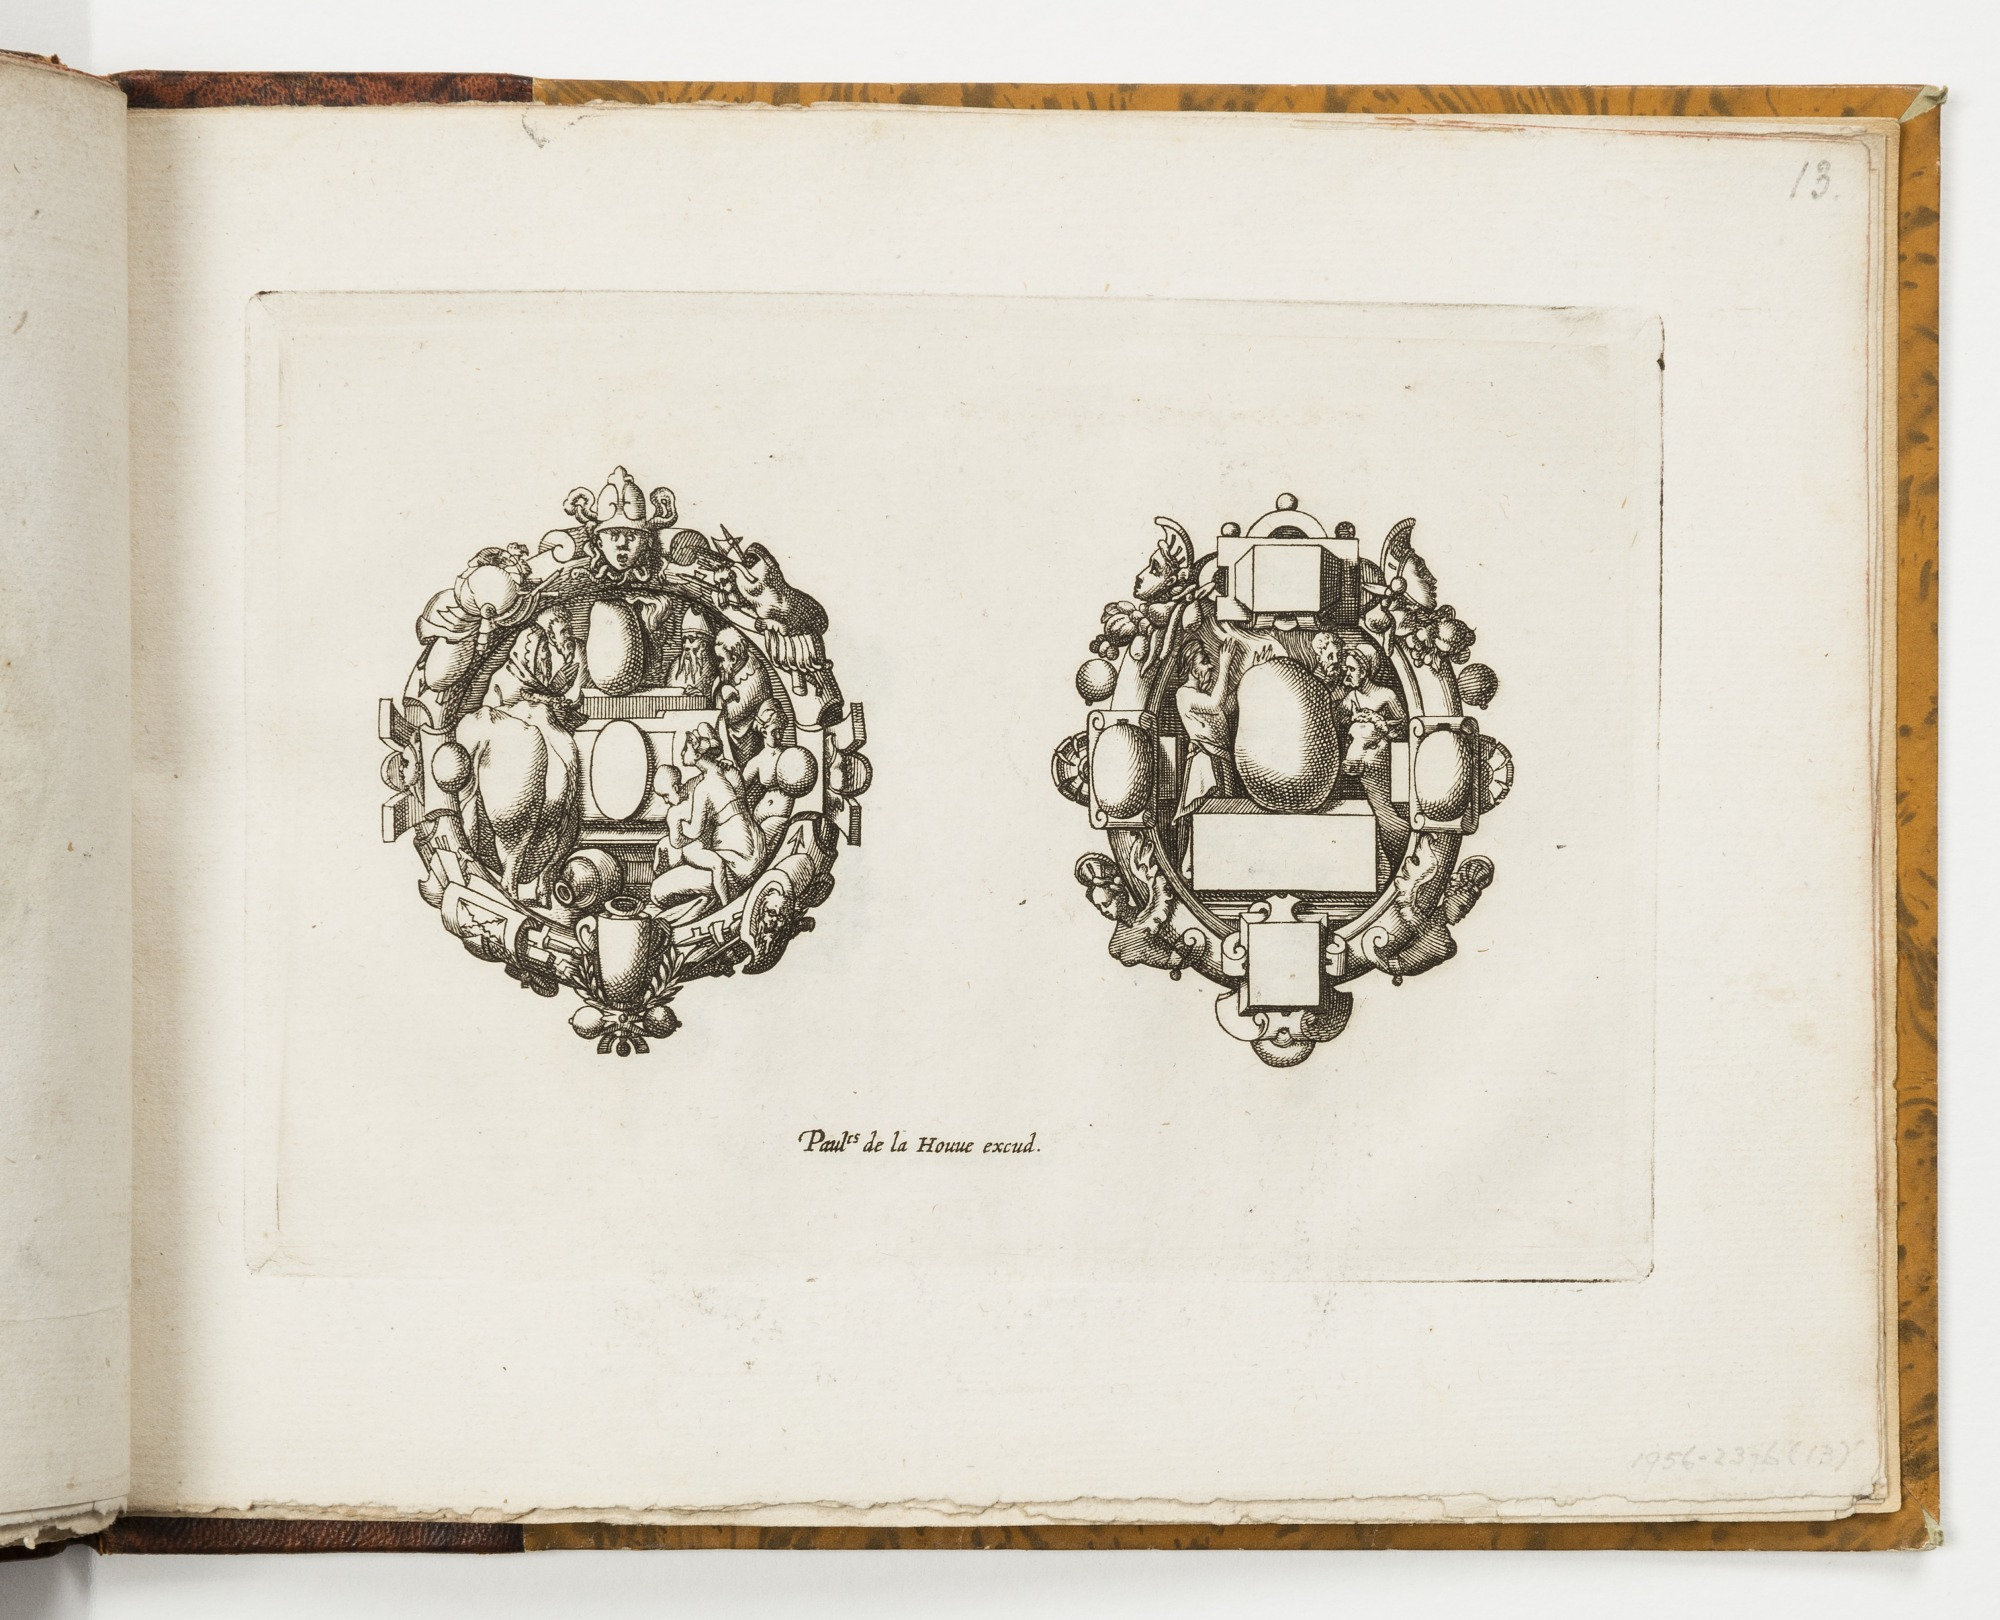 Plate 13, from Livre de bijouterie (Book of Designs for Goldsmiths and Jewelers)